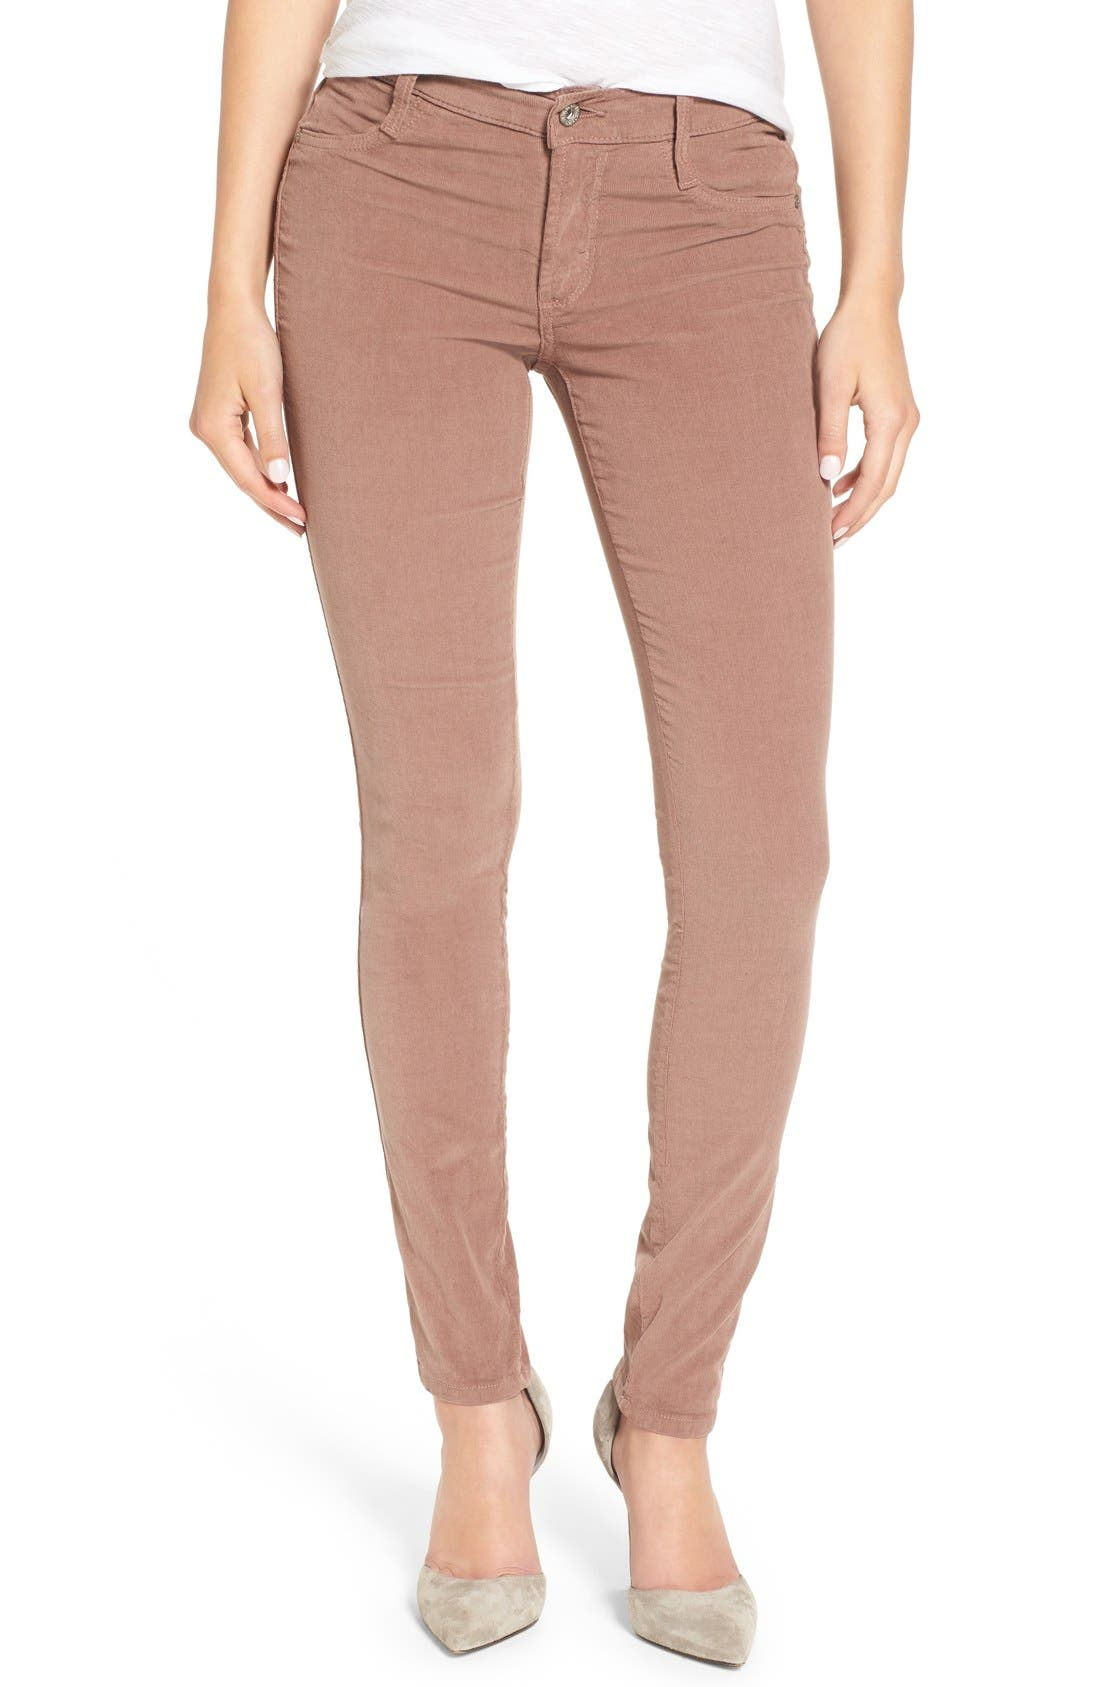 Alternate Image 1 Selected - James Jeans 'Twiggy' Corduroy Skinny Pants (French Roast)